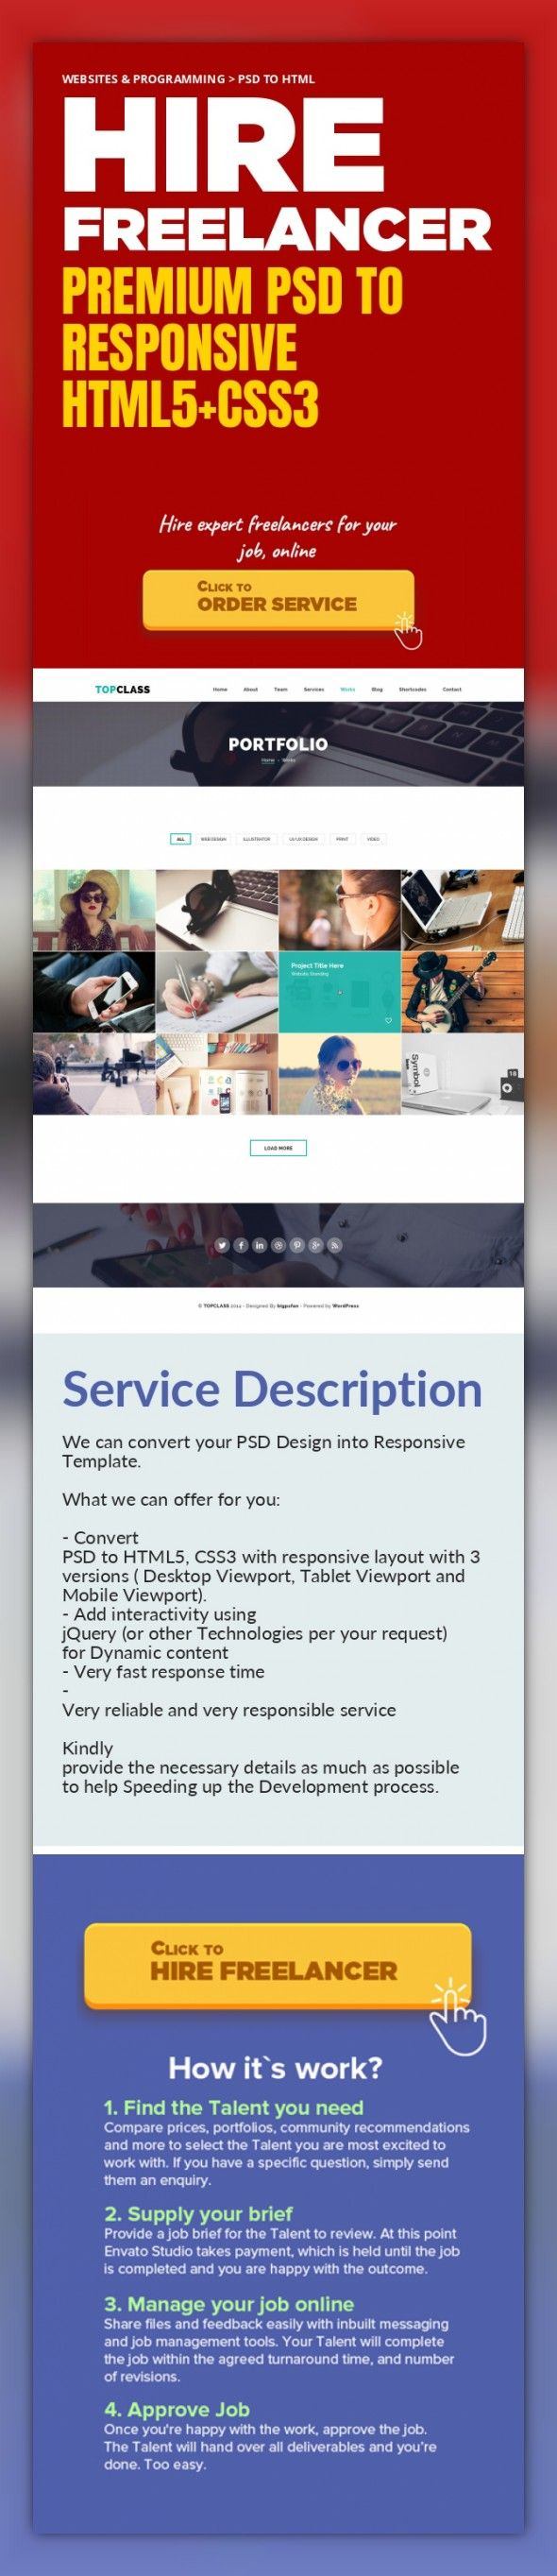 Premium PSD to Responsive HTML5+CSS3 Websites & Programming, PSD to HTML   We can convert your PSD Design into Responsive Template.     What we can offer for you:     - Convert PSD to HTML5, CSS3 with responsive layout with 3 versions ( Desktop Viewport, Tablet Viewport and Mobile Viewport).   - Add interactivity using jQuery (or other Technologies per your request) for Dynamic content   - Very fa...